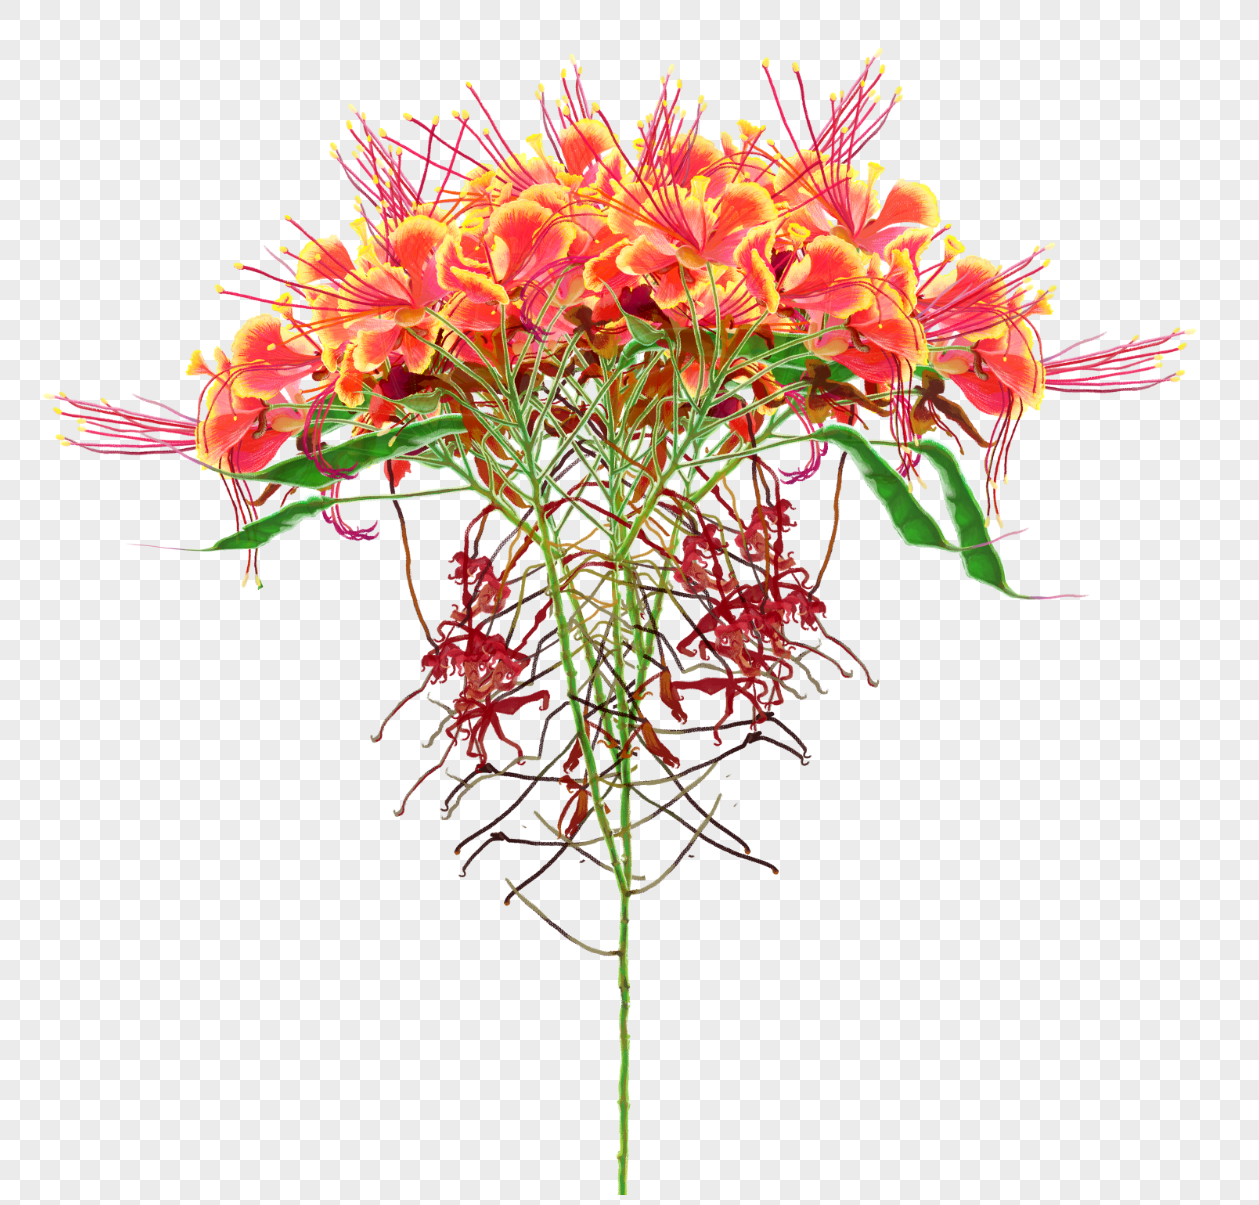 Flower bouquet png imagepicture free download 400223093lovepik flower bouquet izmirmasajfo